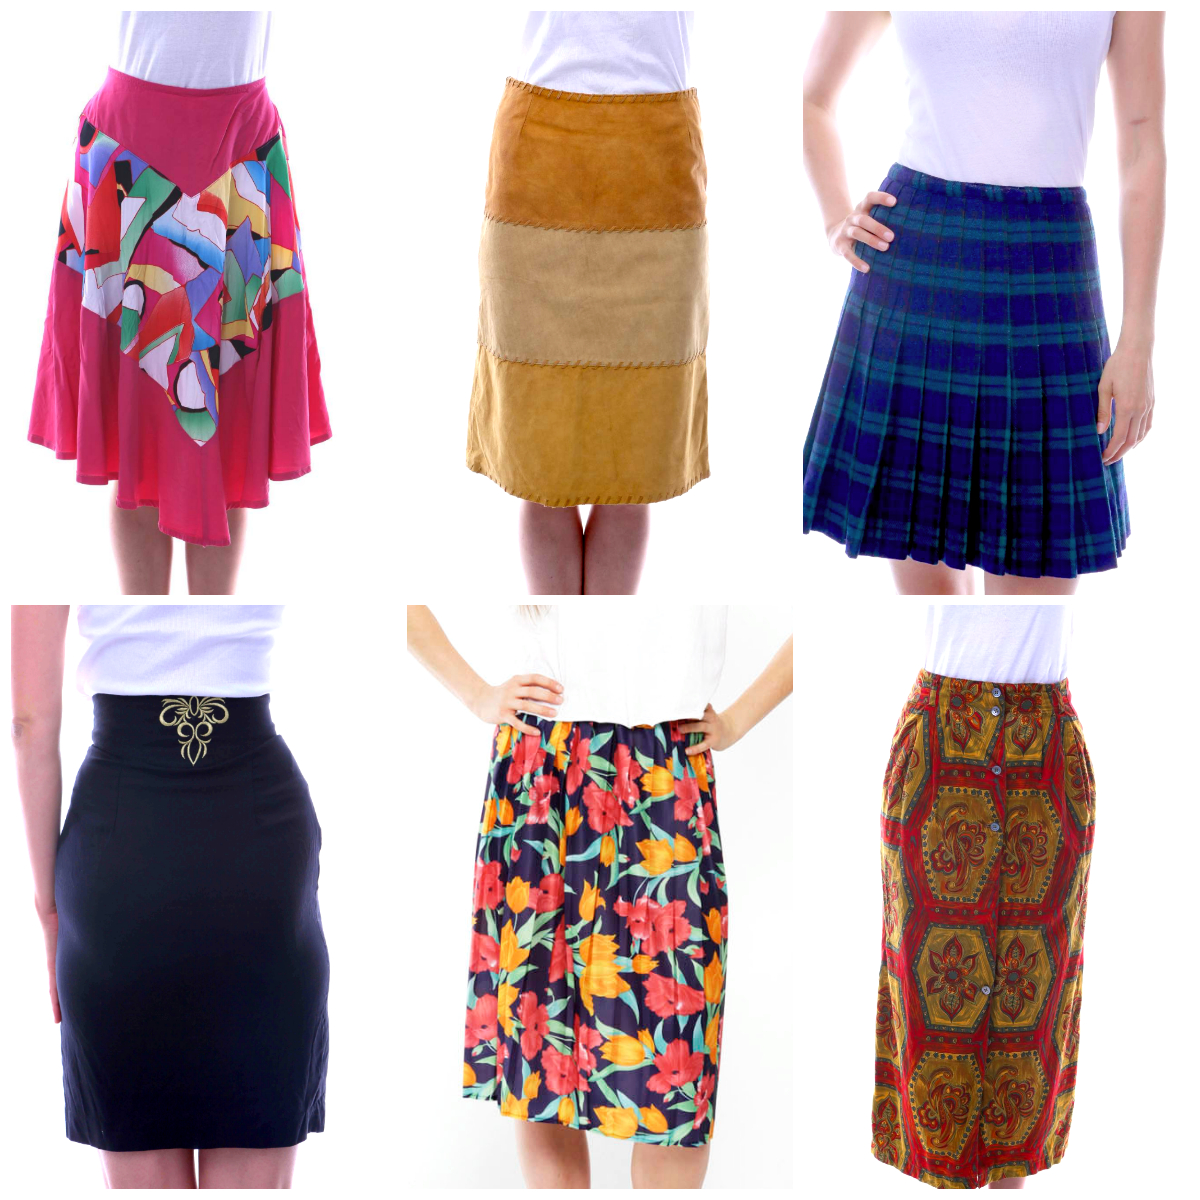 Skirts categories pic.jpg